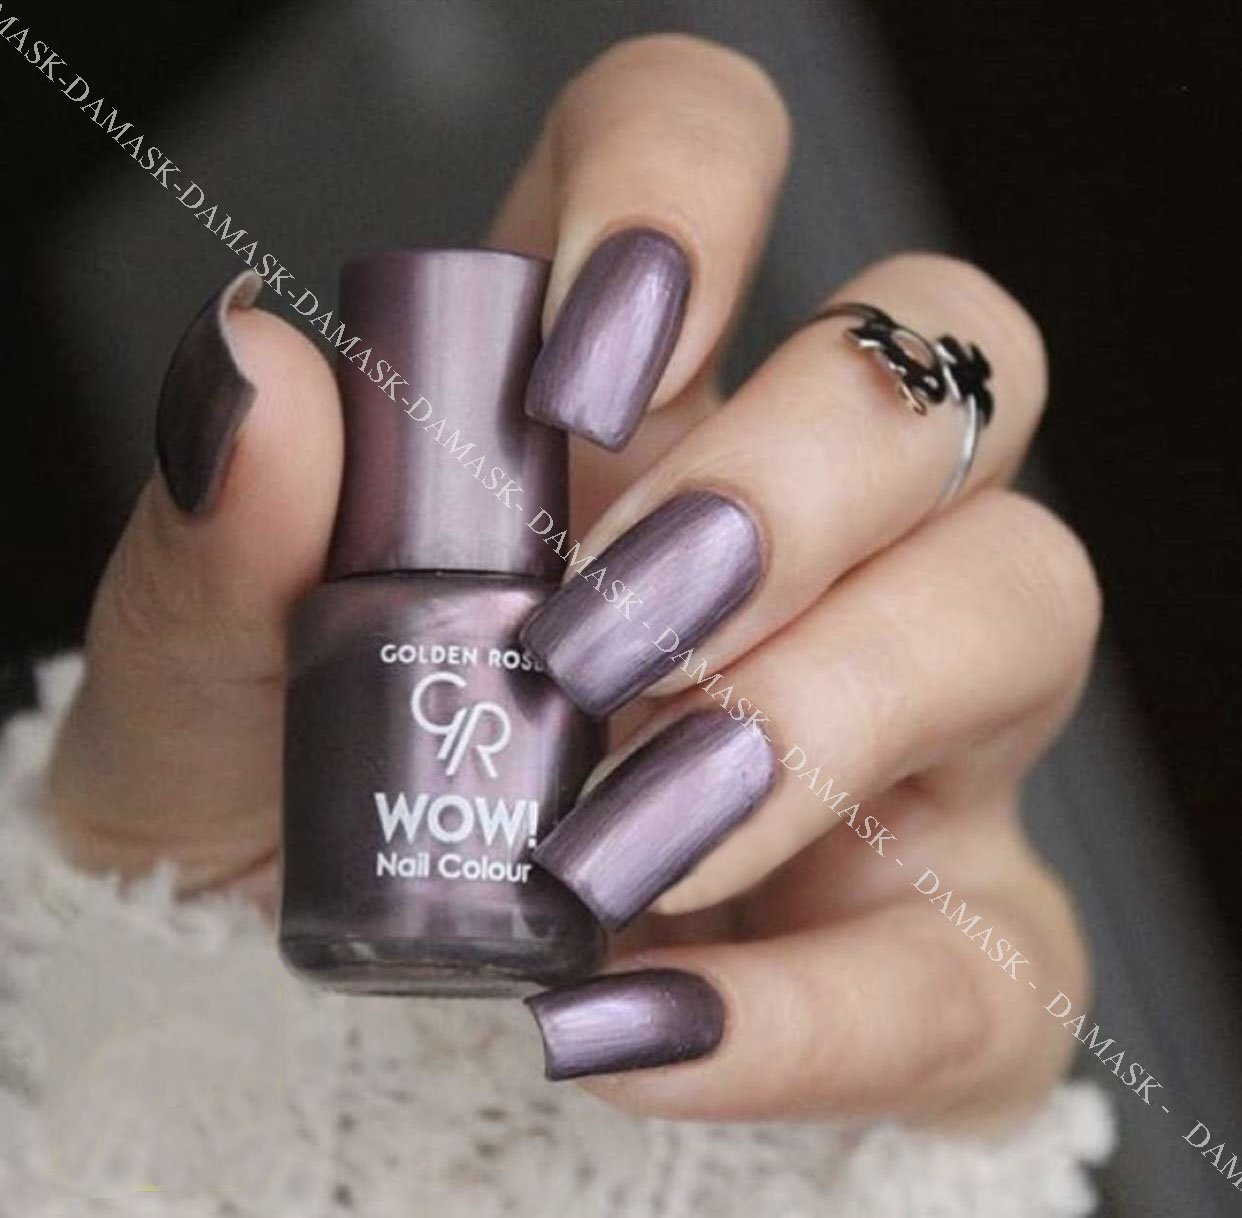 Sơn móng Golden Rose Wow Nail Color - Màu 44